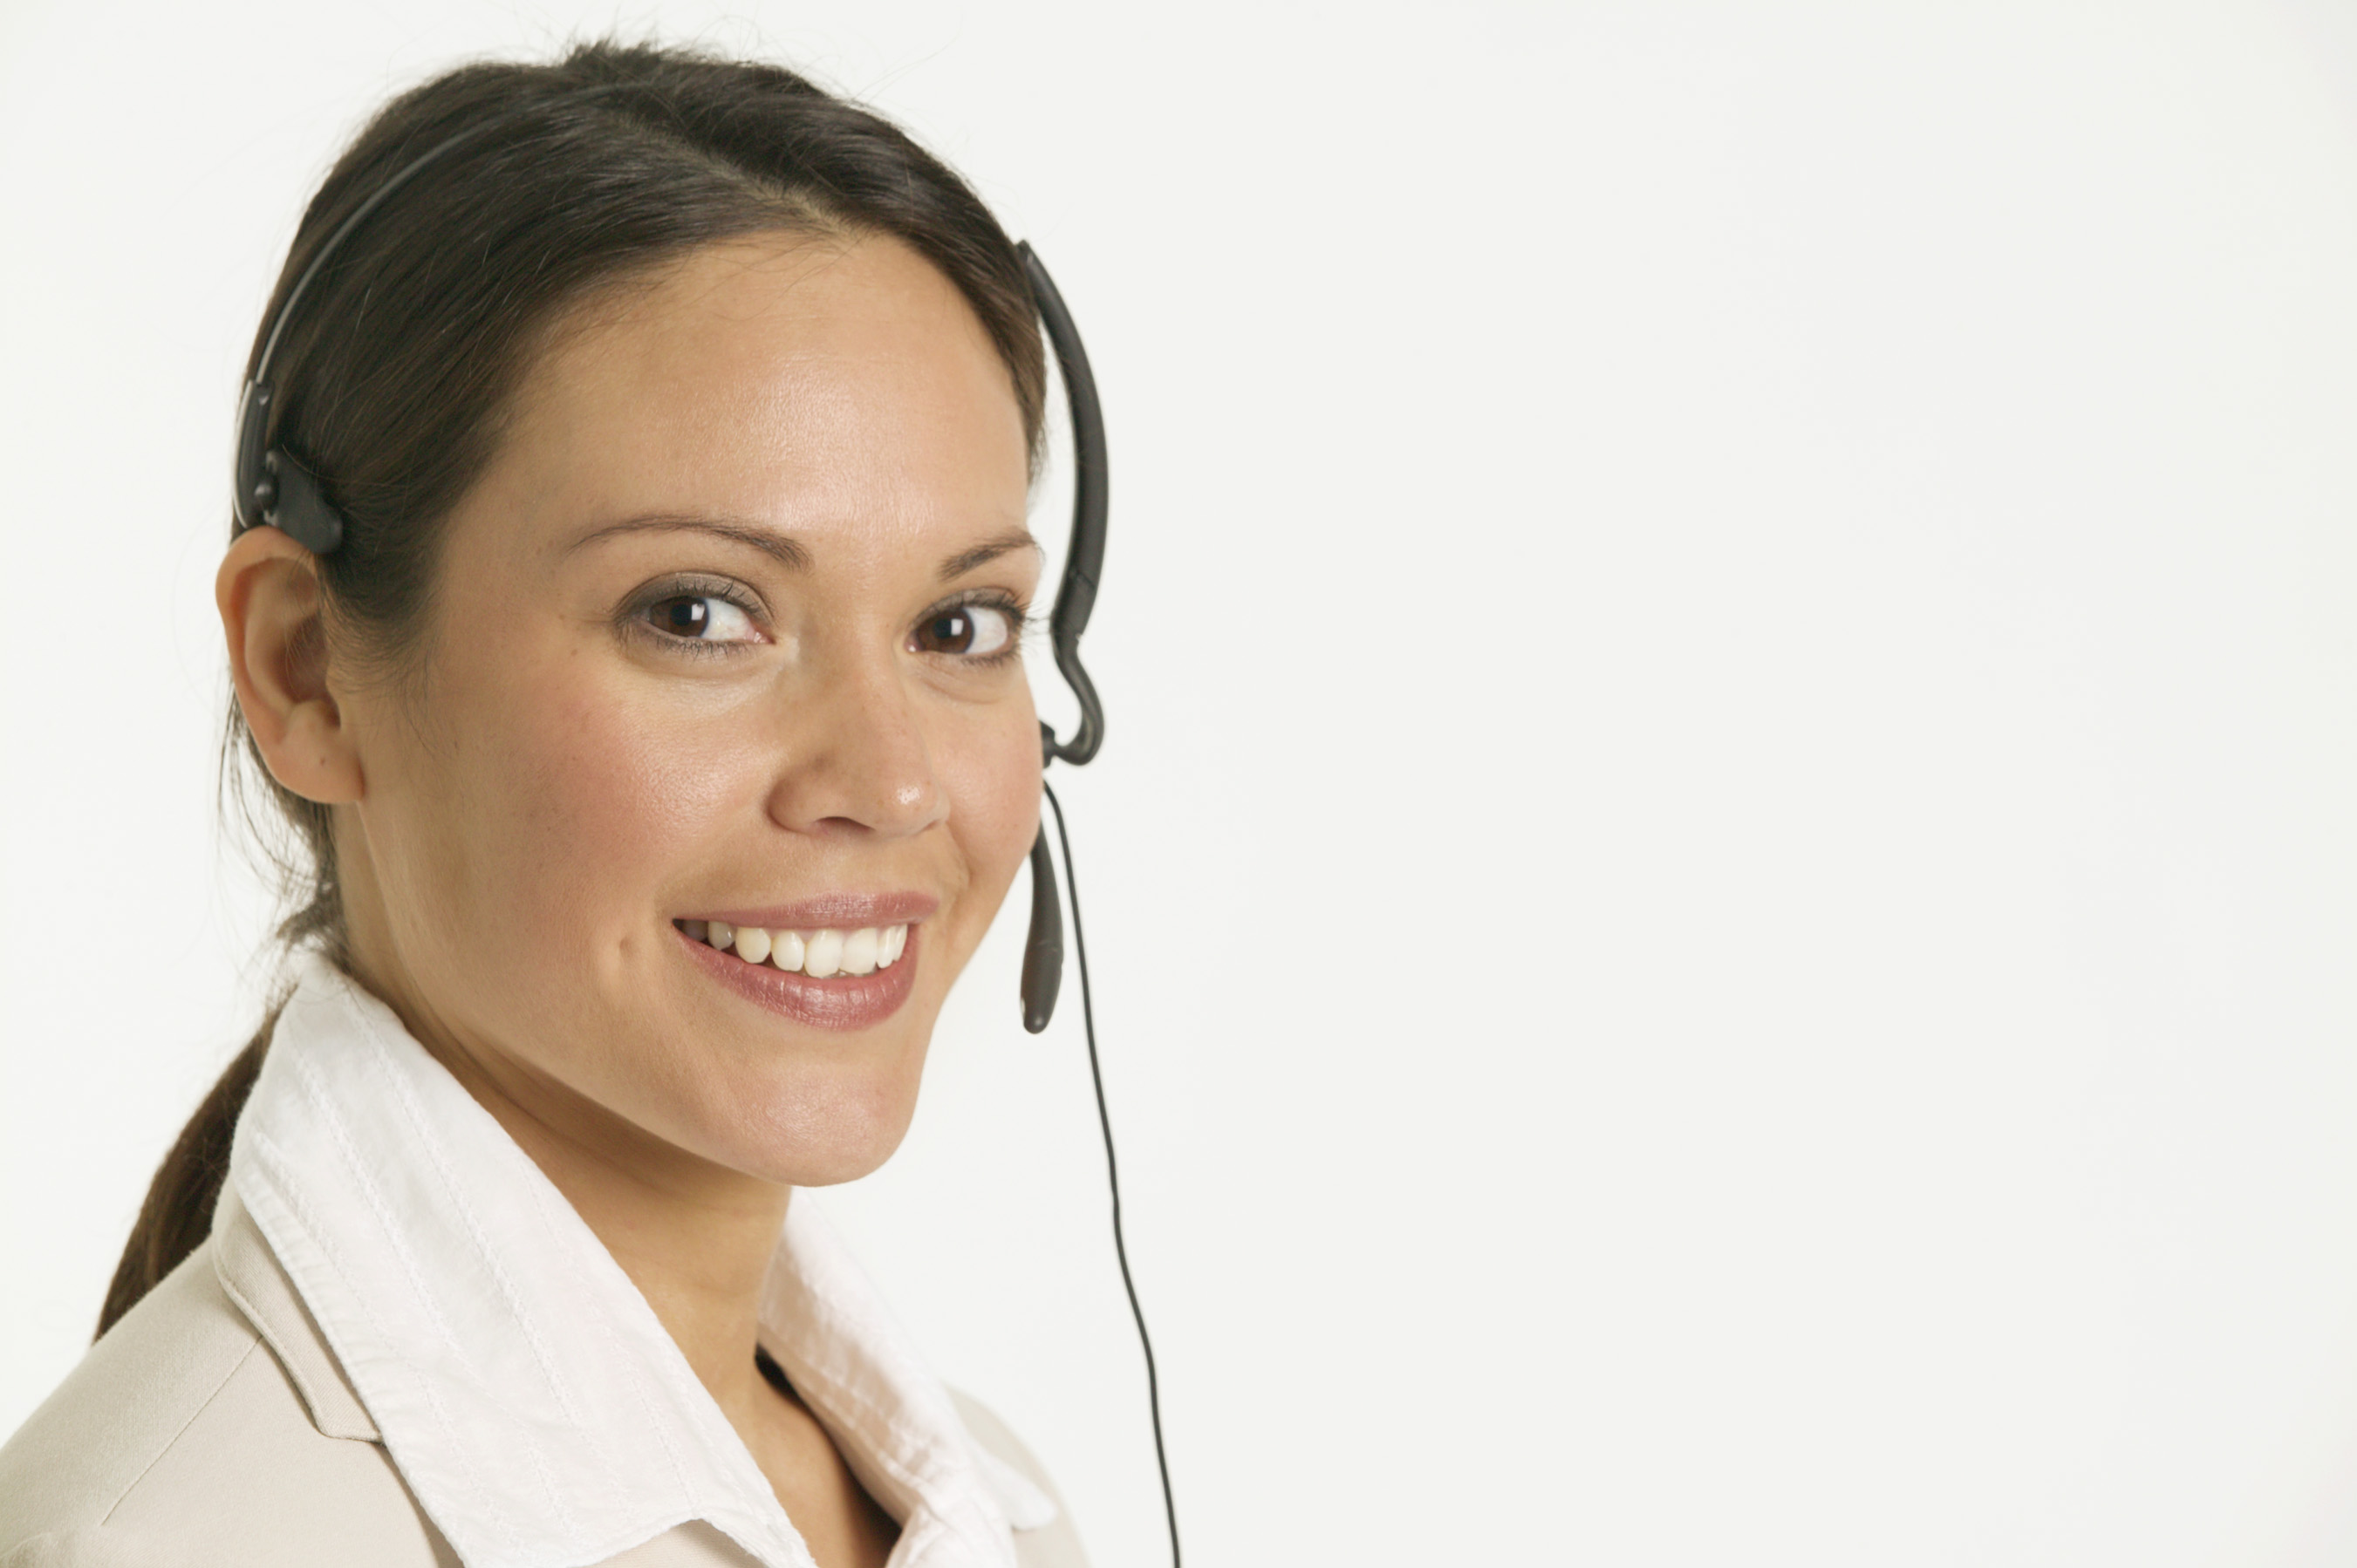 girl on headset